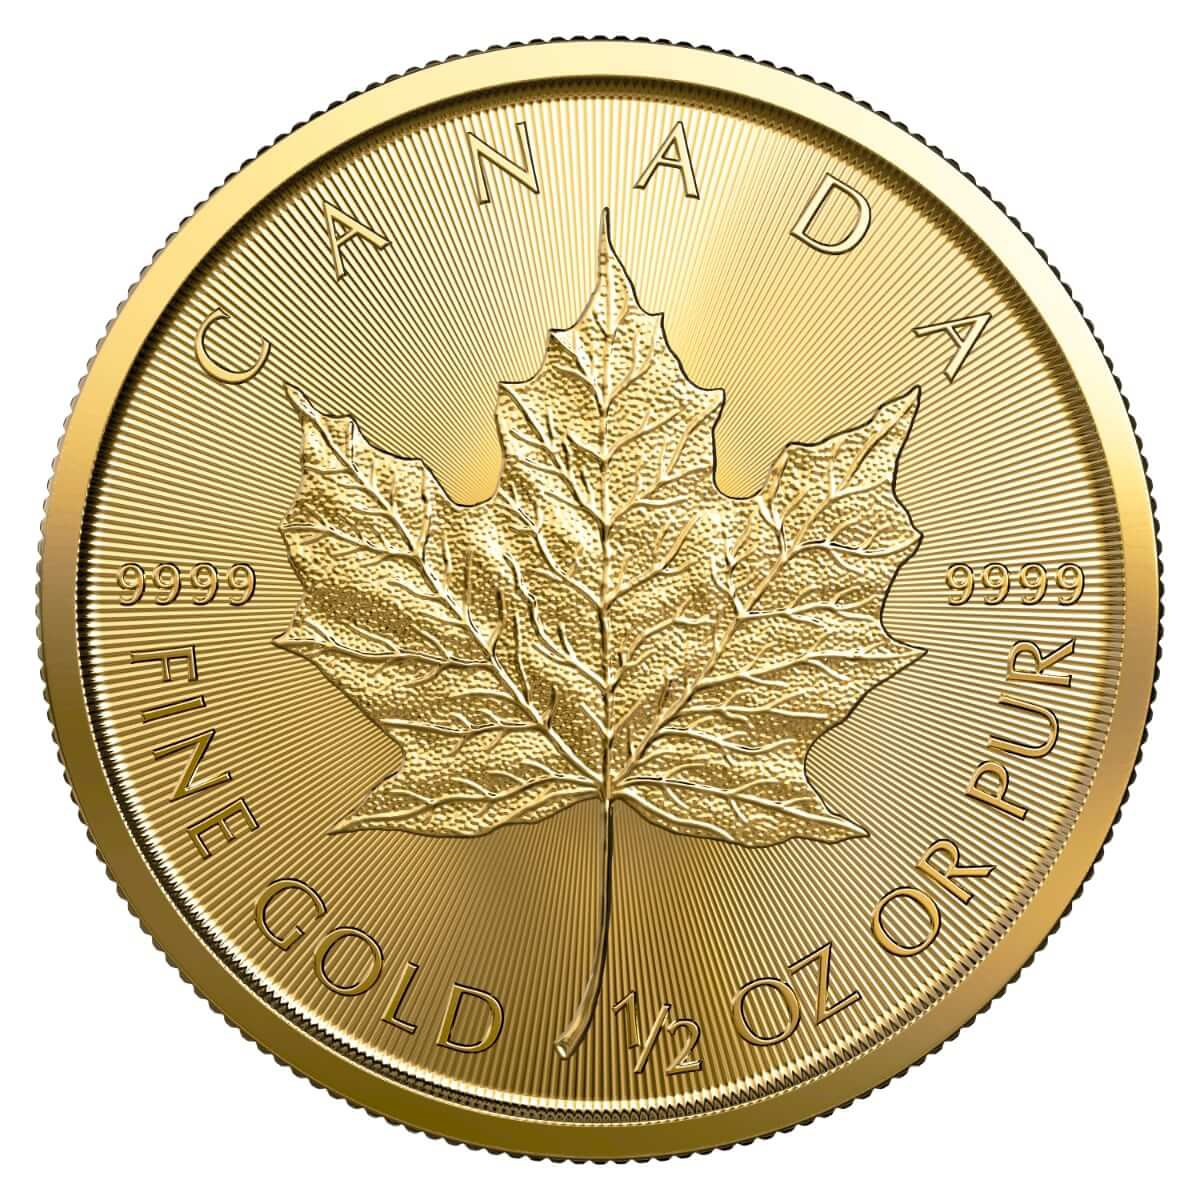 1/2 Ounce Gold Canadian Maple Leaf 2019